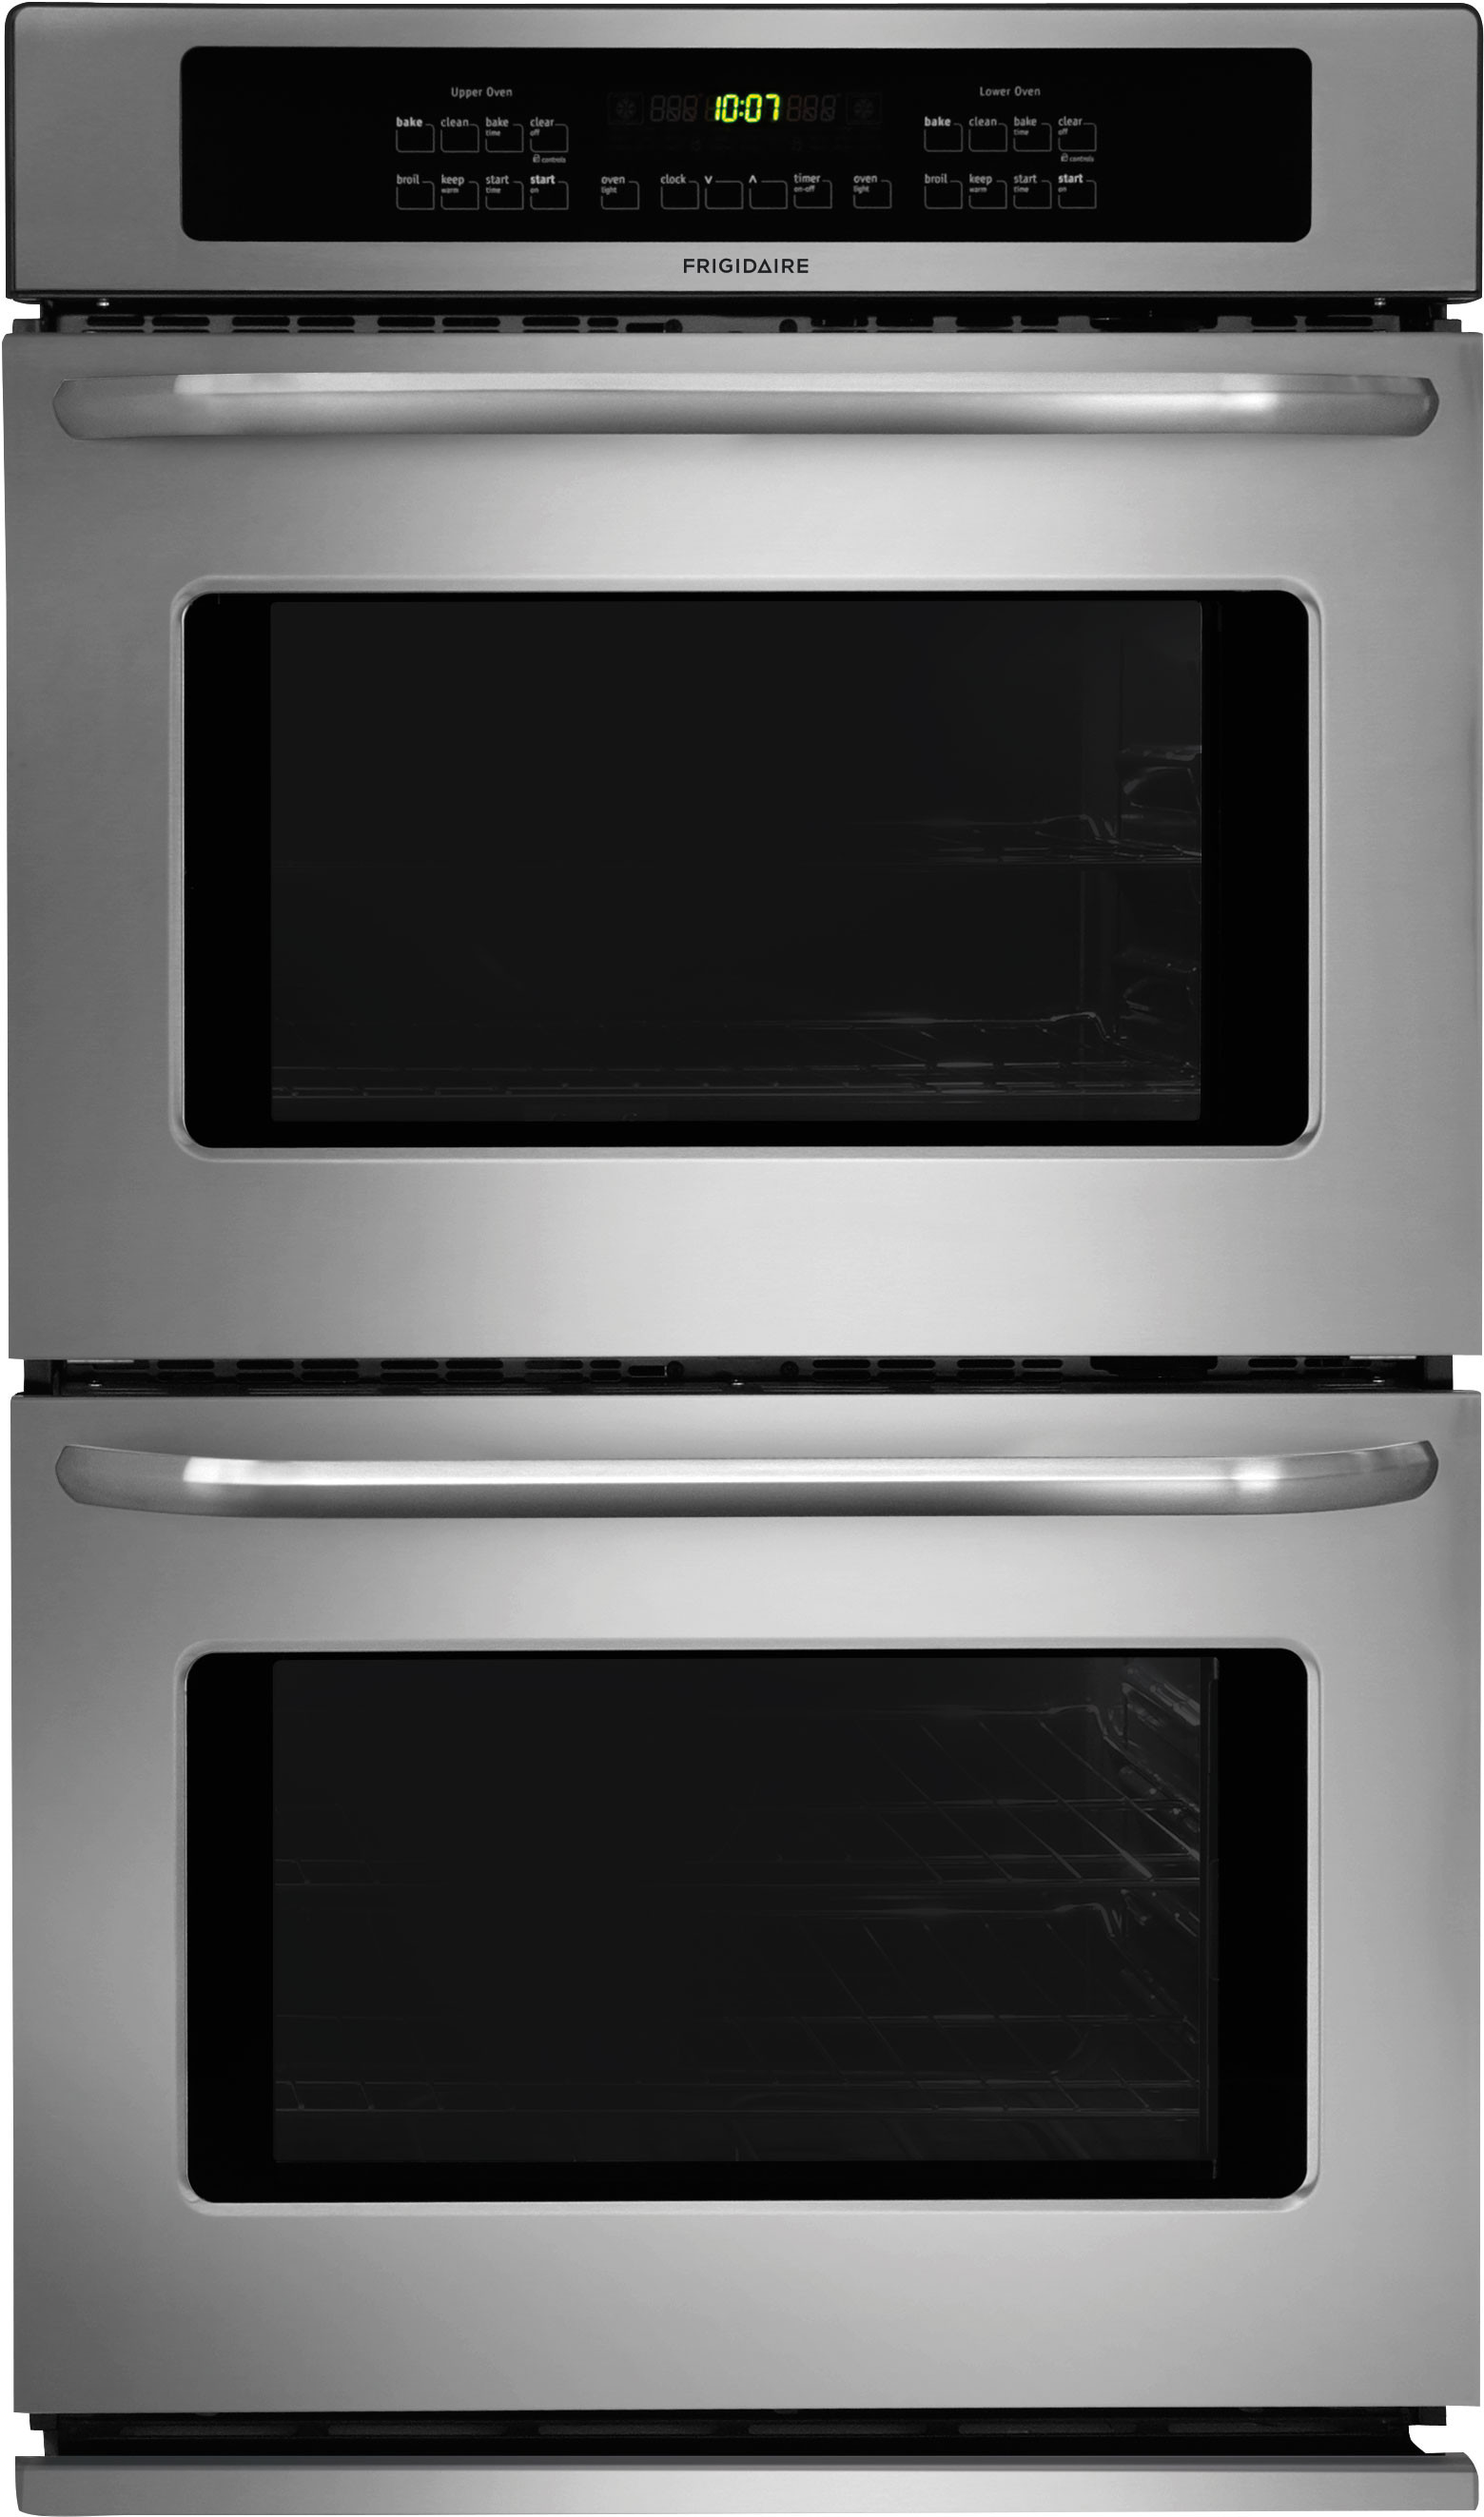 Frigidaire professional 30'' built-in convection microwave oven.